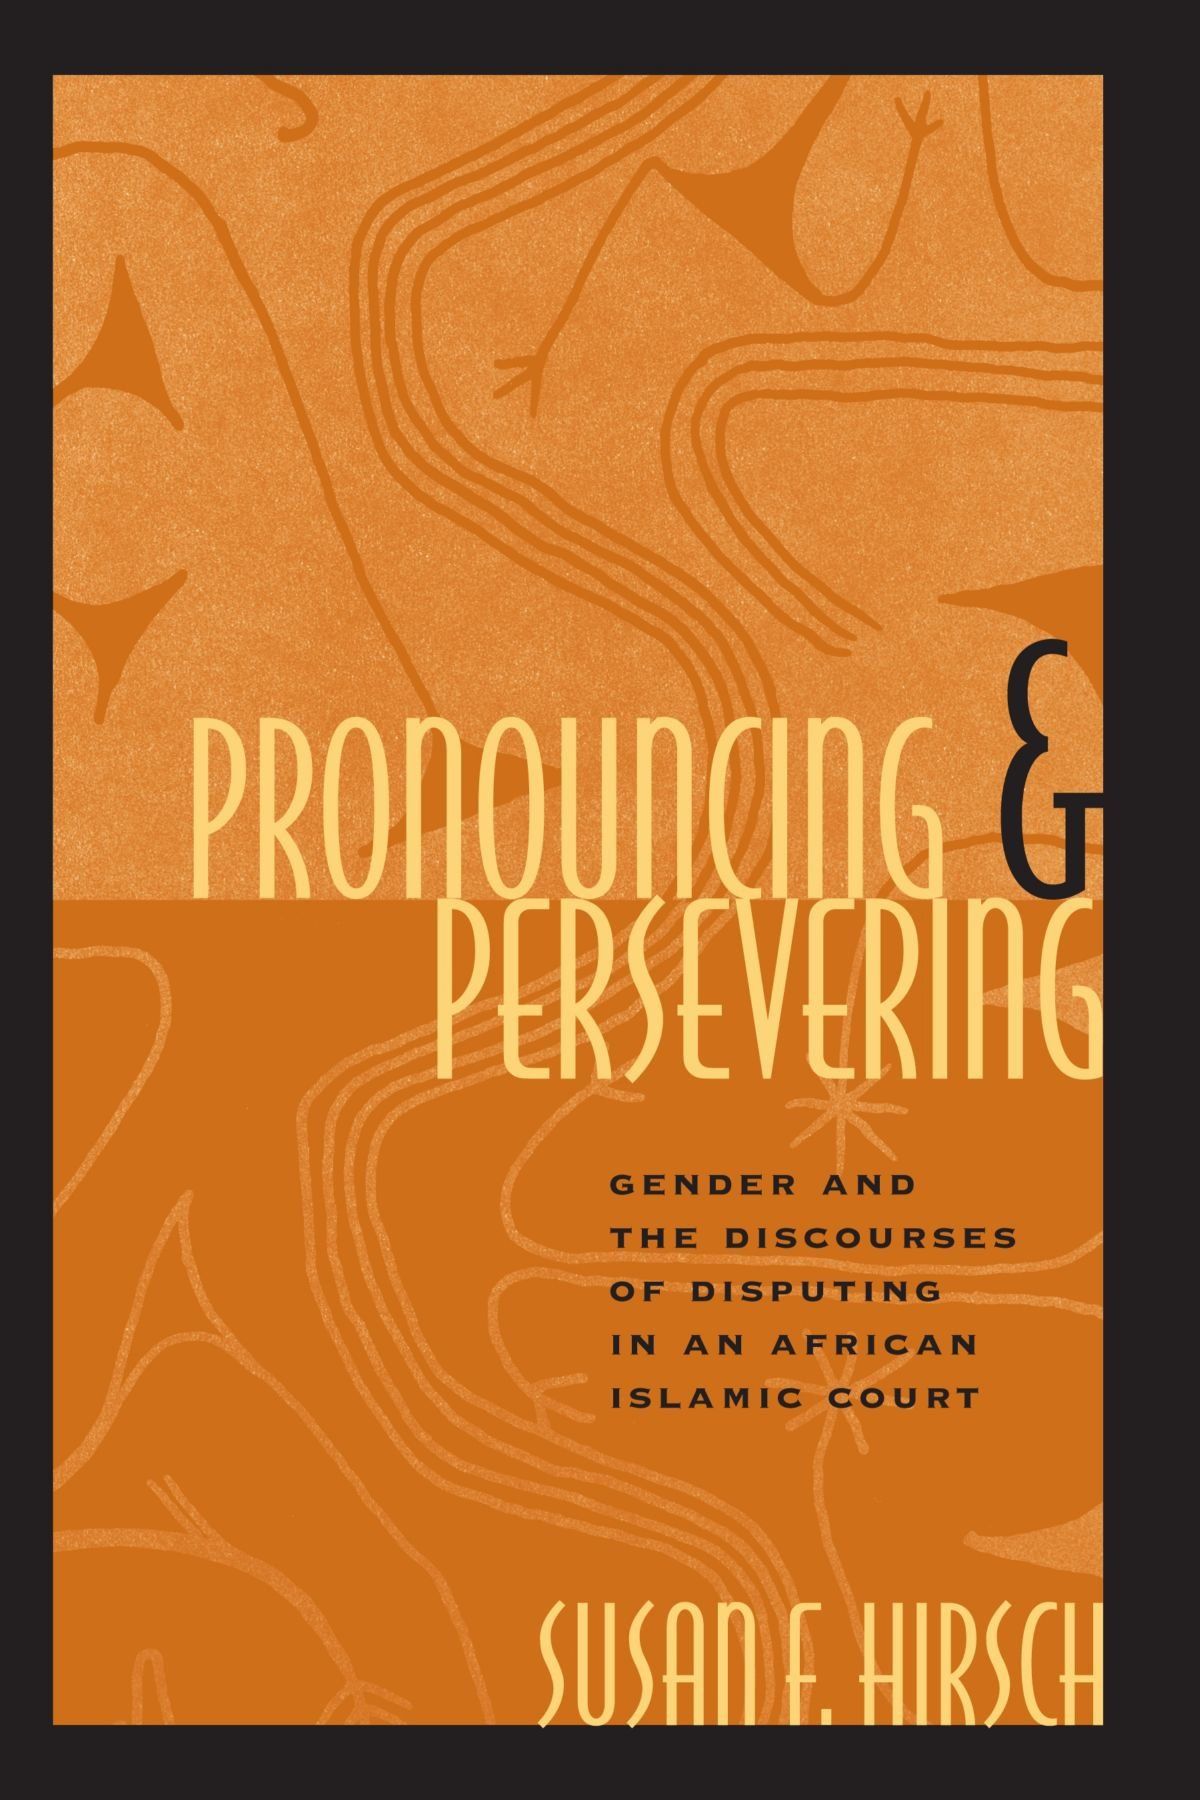 Pronouncing and Persevering: Gender and the Discourses of Disputing in an African Islamic Court (Chicago Series in Law and Society)